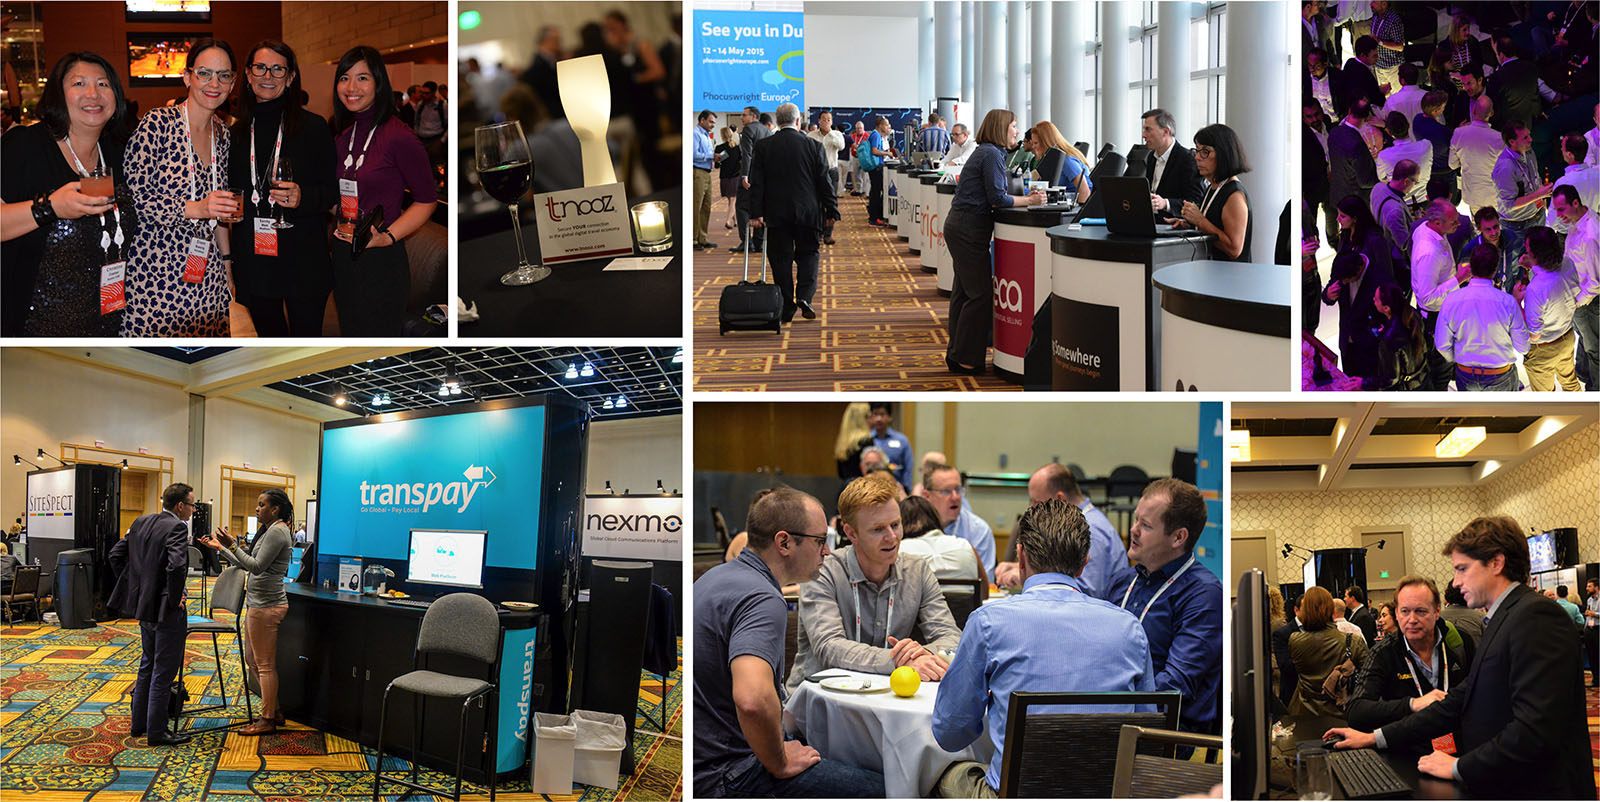 Sponsor and Exhibit Collage at Phocuswright